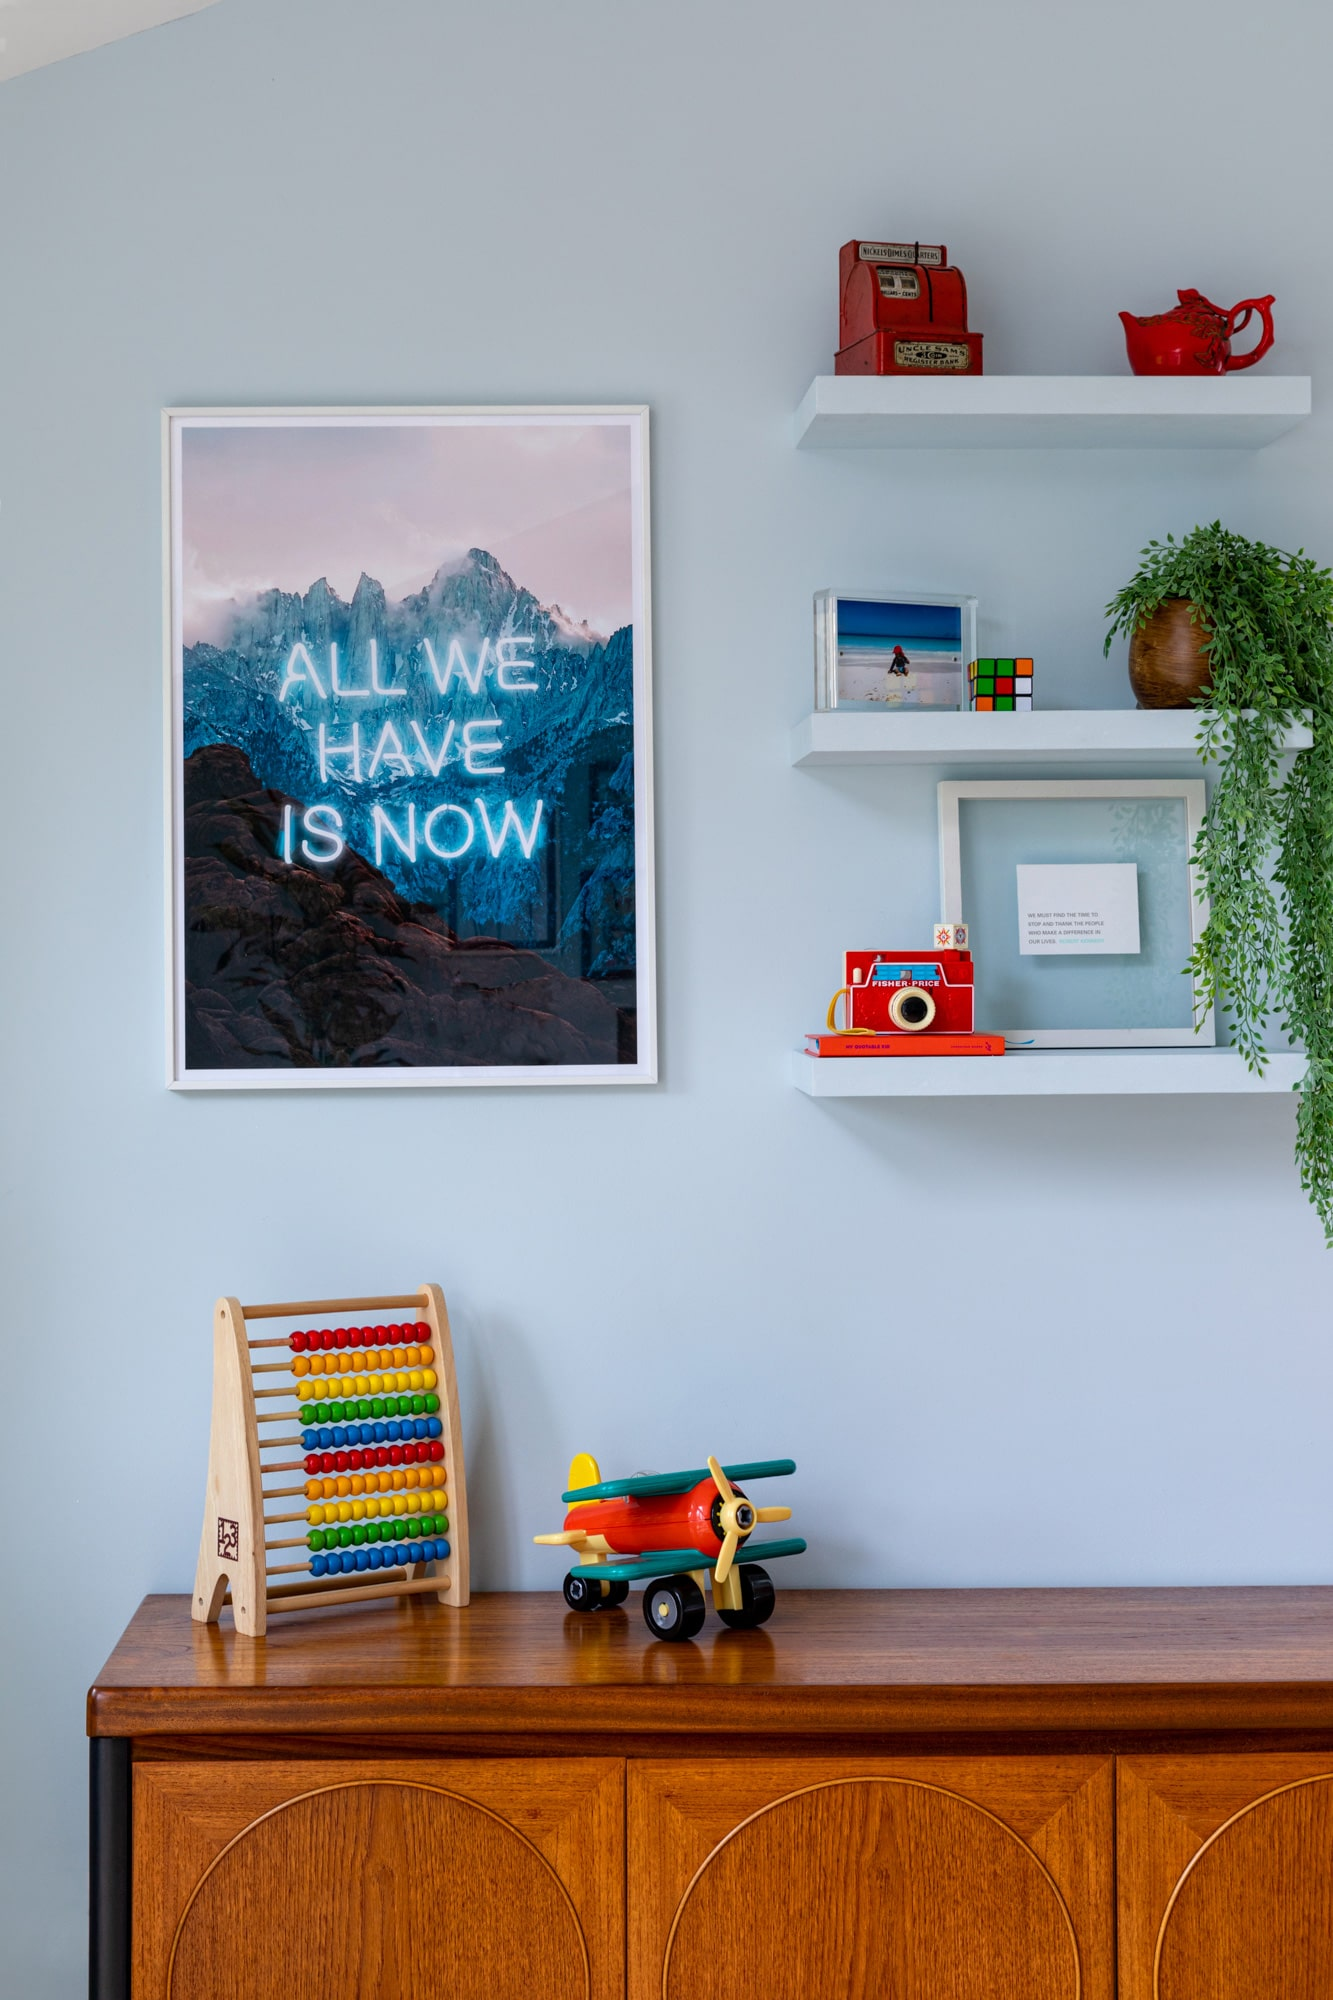 Interior detail photo of a child's play area: wooden cabinet with toys on top; shelves with toys and plant; poster on the wall